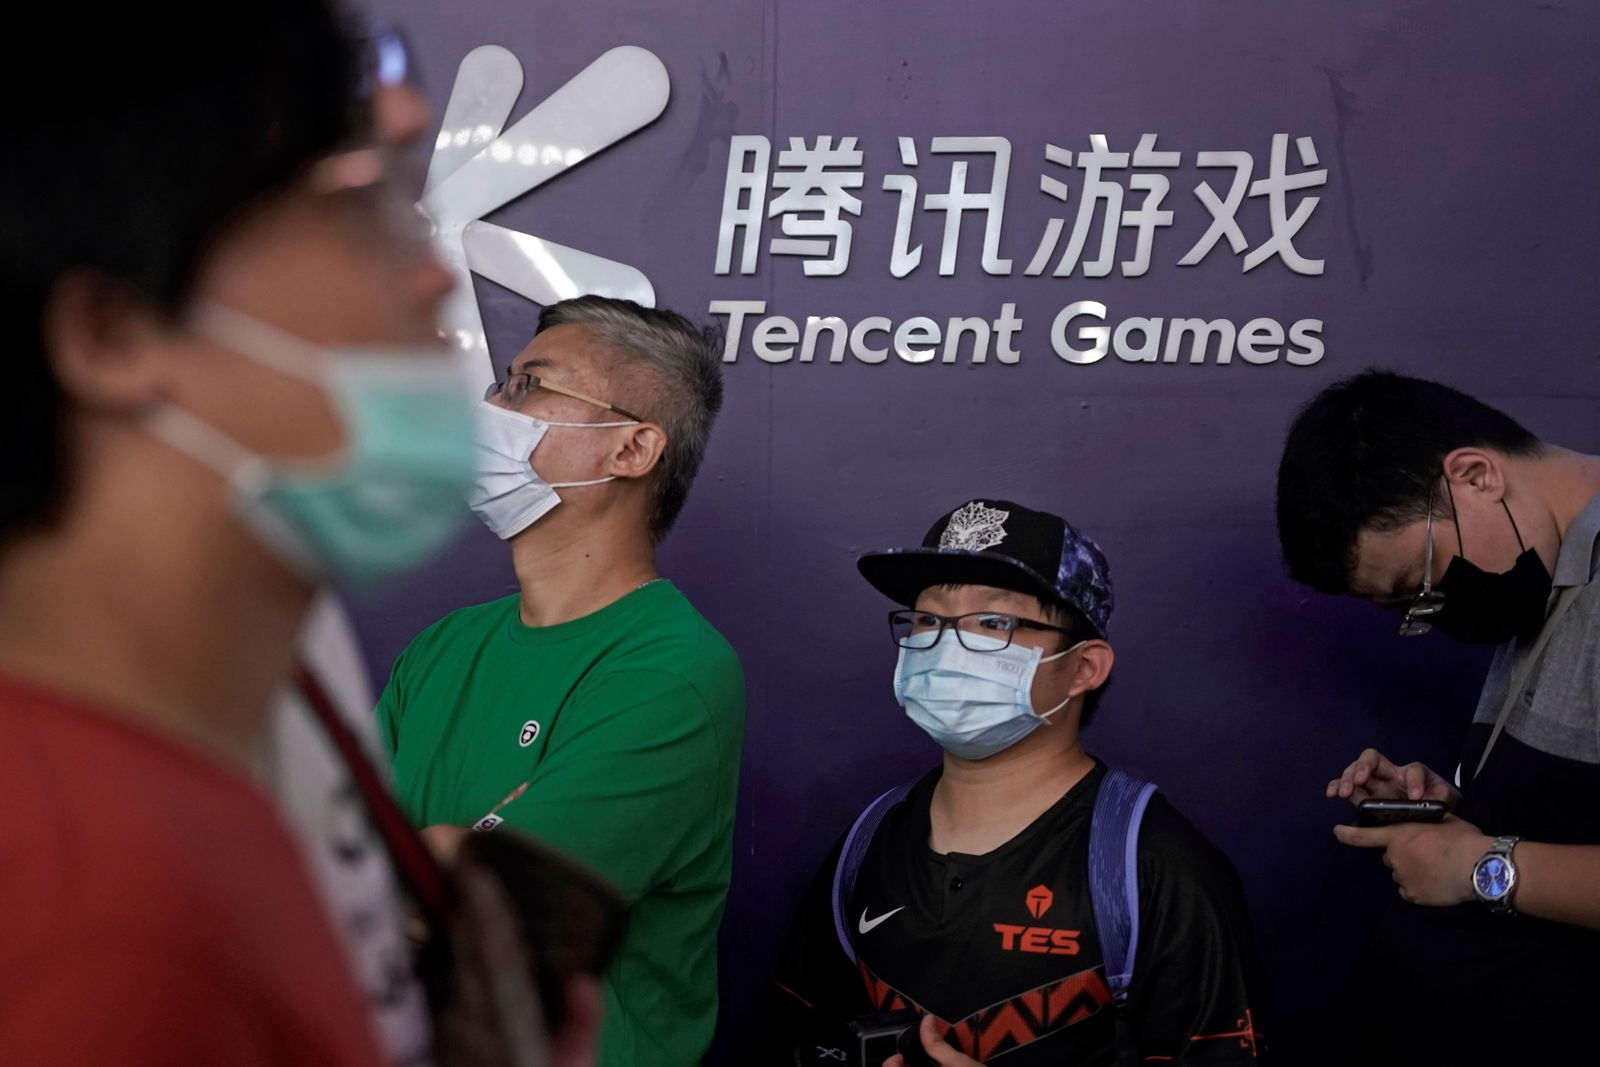 Tencent Games sign is seen at the China Digital Entertainment Expo and Conference (ChinaJoy) in Shanghai